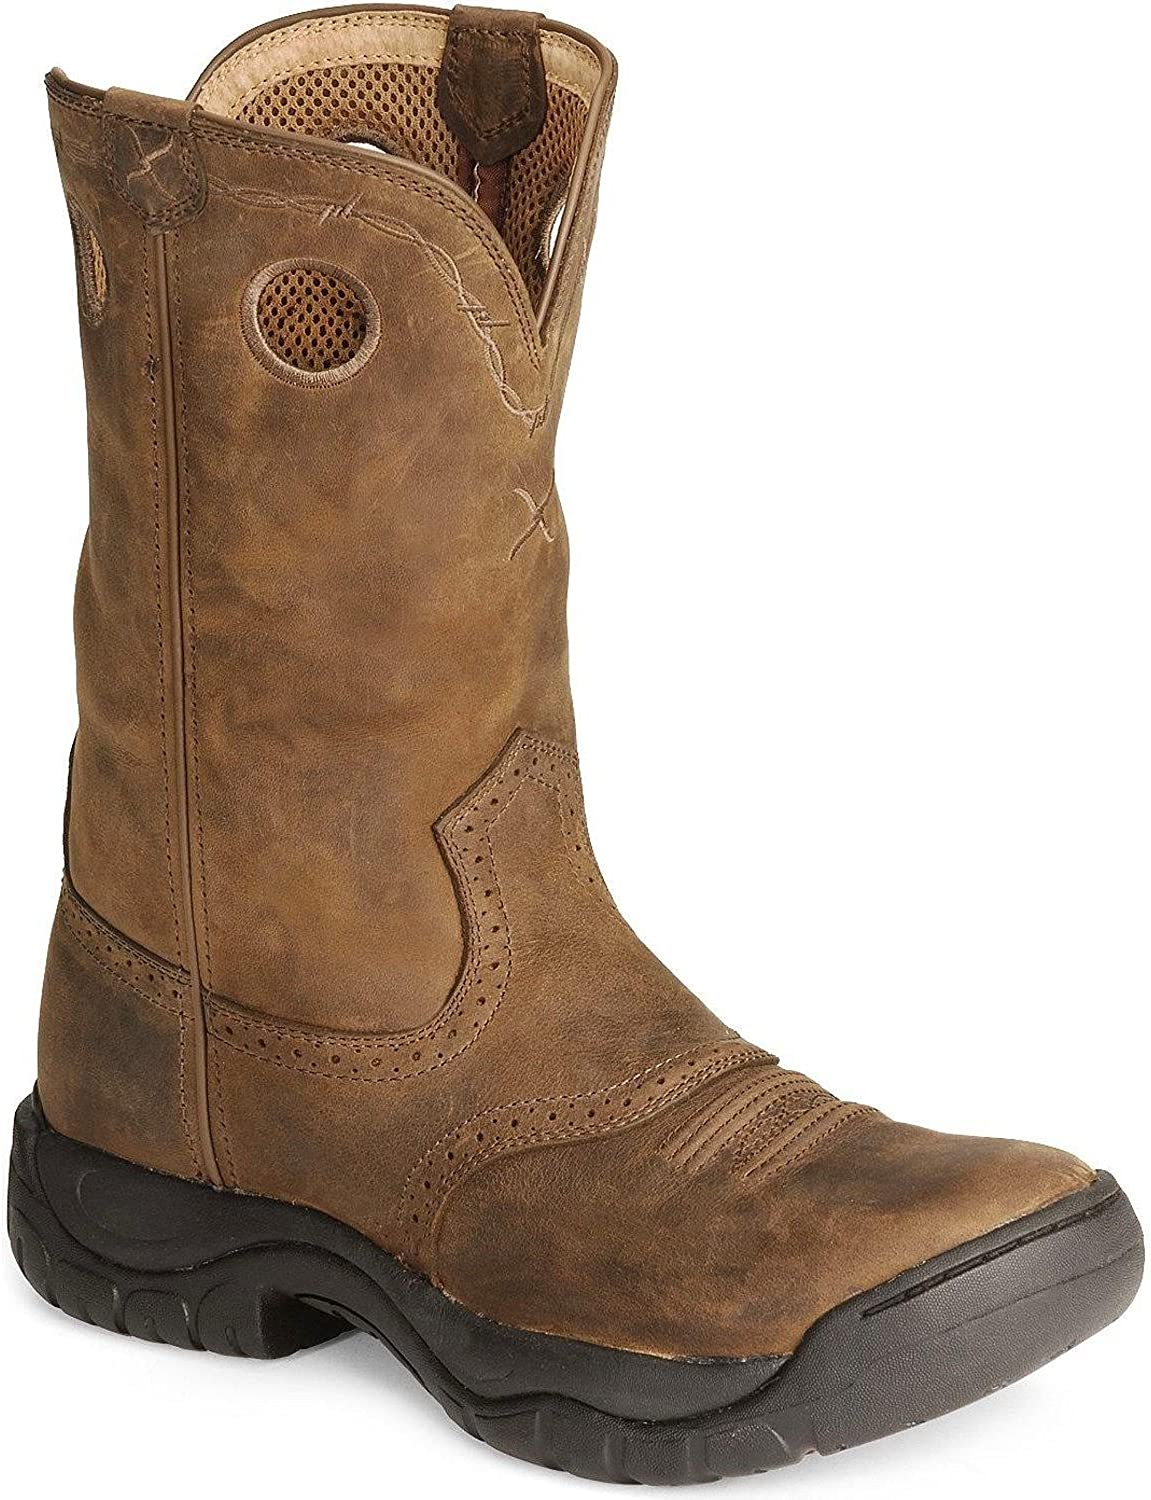 Twisted X Western Boots Mens Leather All Around Saddle MAB0001